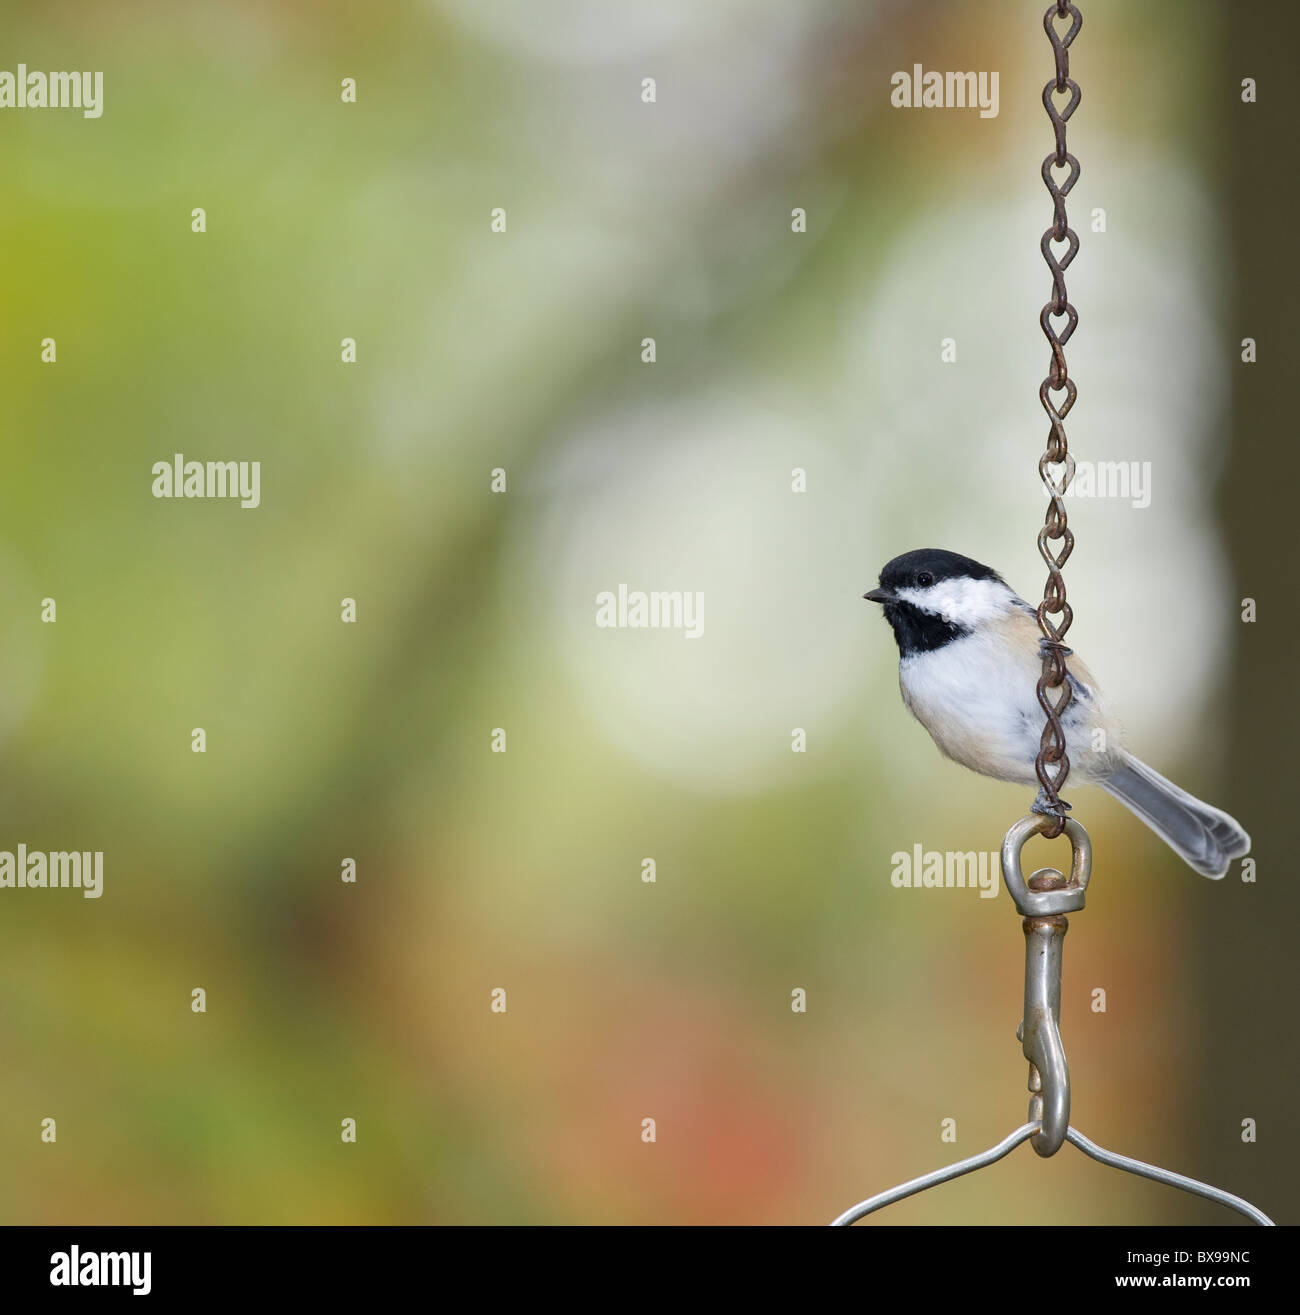 A striking photograph of a Carolina Chickadee - Stock Image